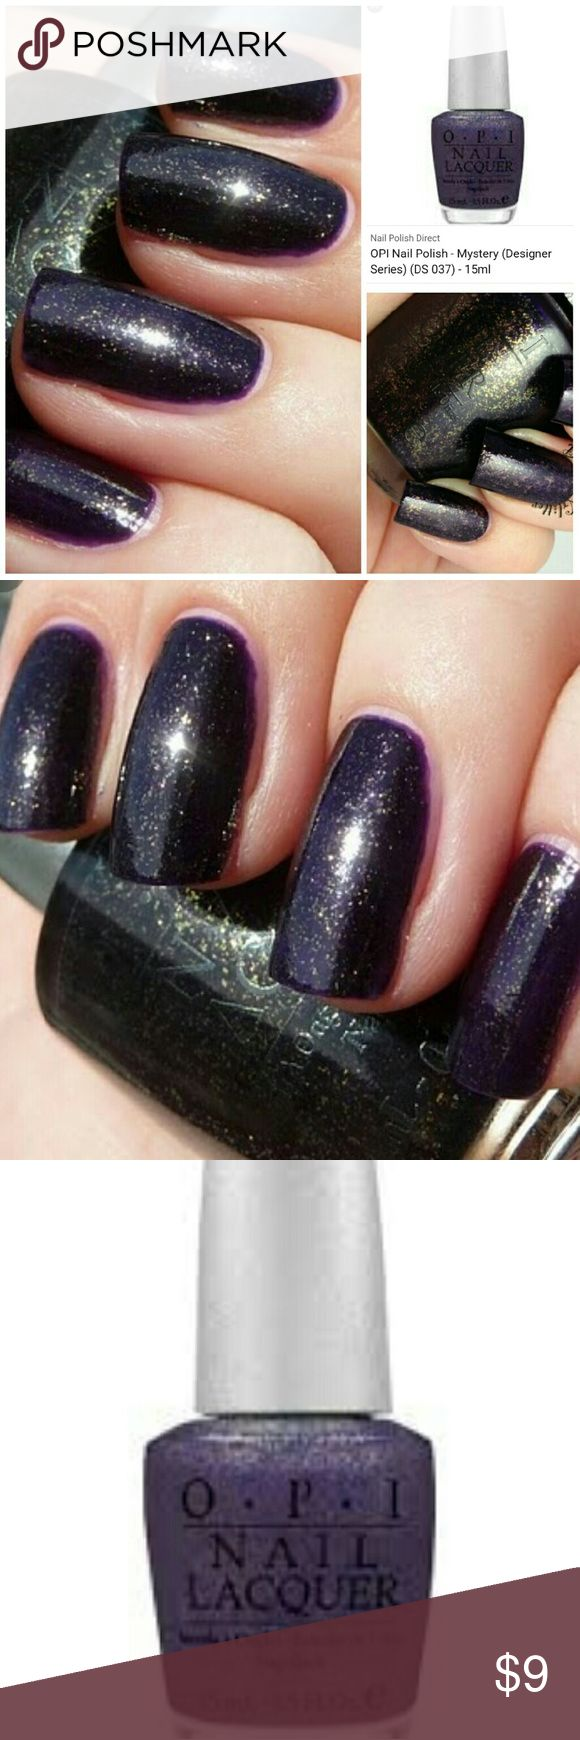 11 best Disco\'d Maybellines images on Pinterest | Coat, Coats and ...